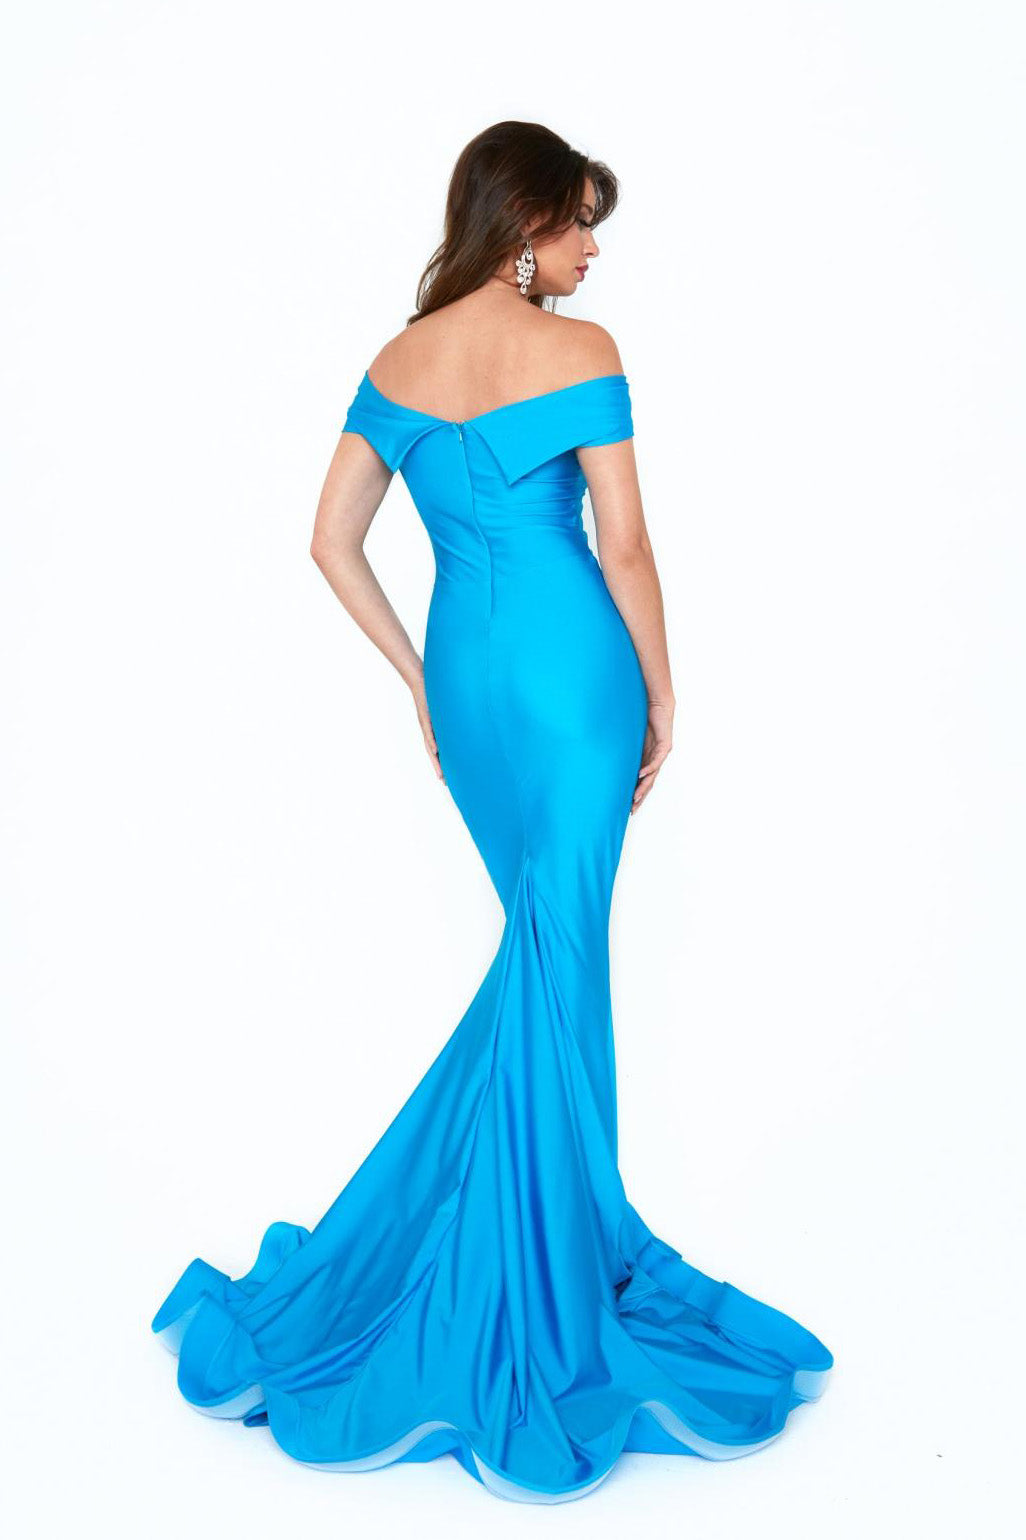 Atria 6204H off the shoulder mermaid dress